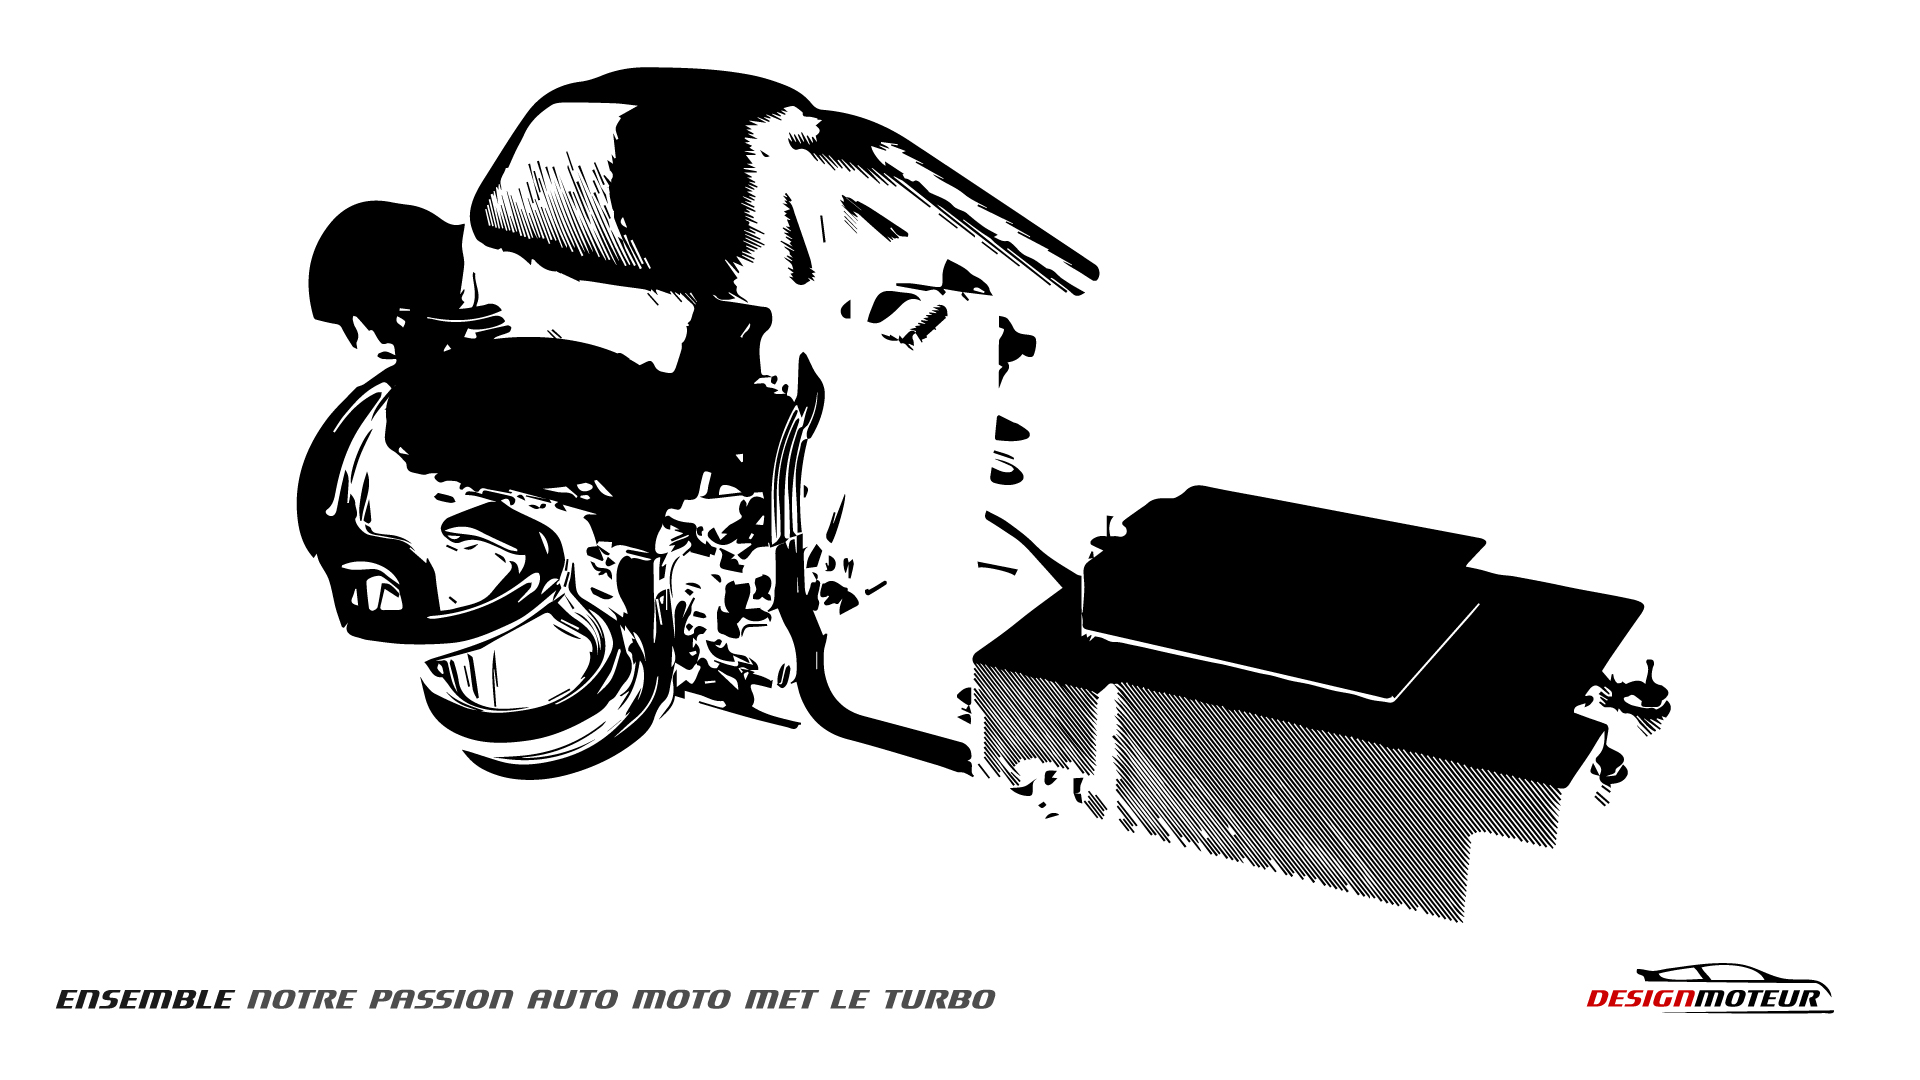 Wallpaper DESIGNMOTEUR 2014 - F1 POWER UNIT